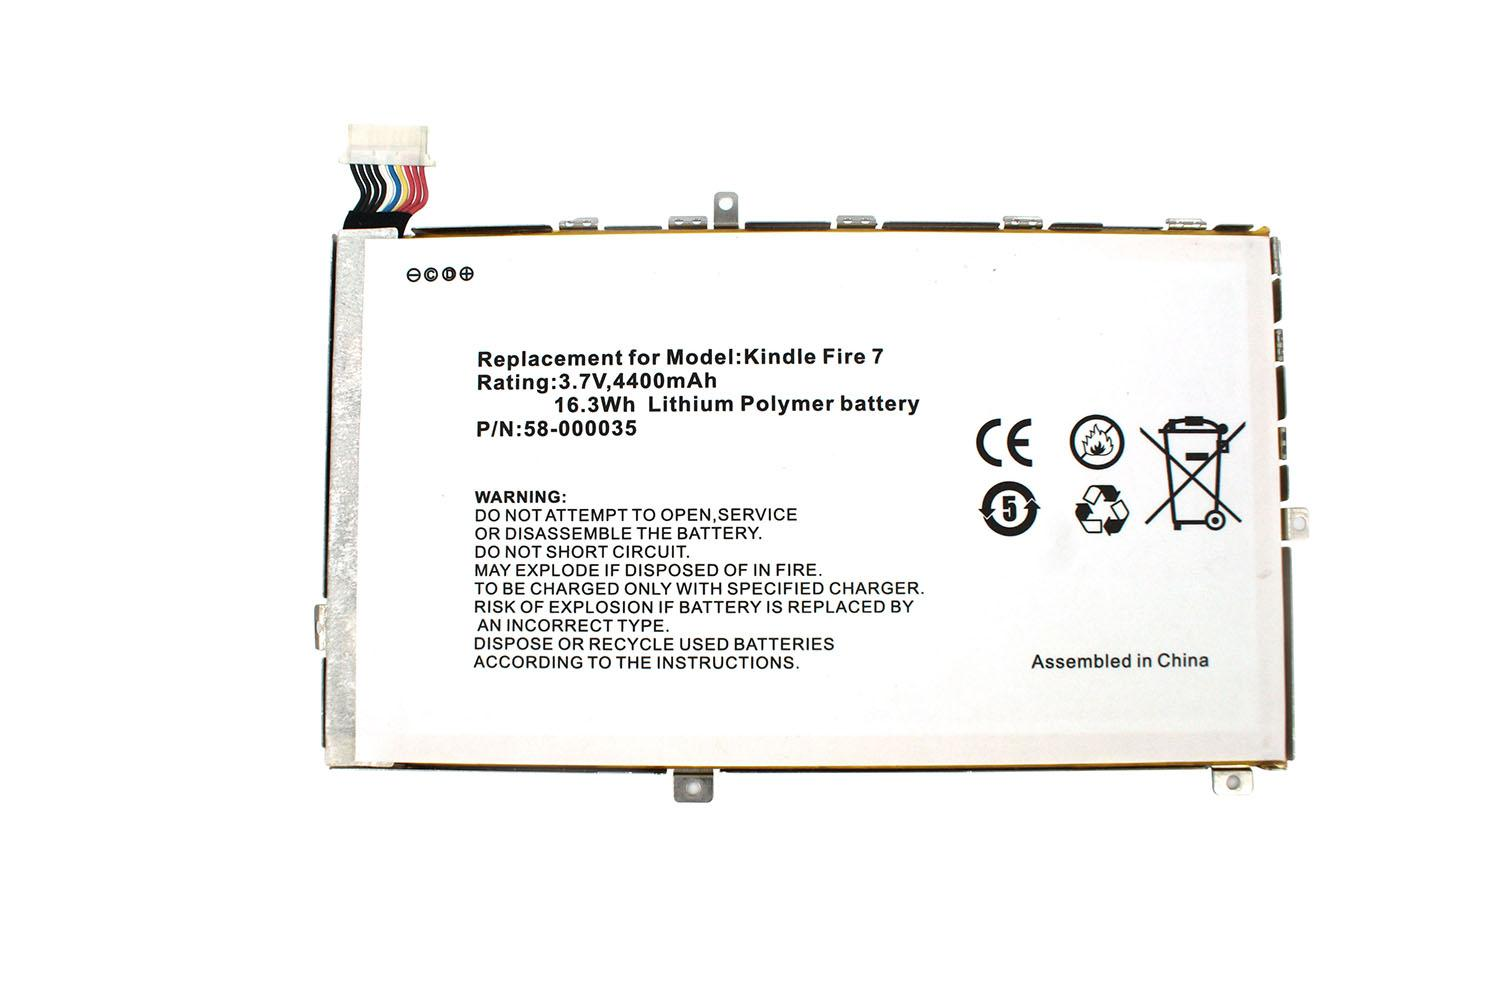 370 V Replacement For Amazon Kindle Fire Hd 7 Tablet Pc Batteries